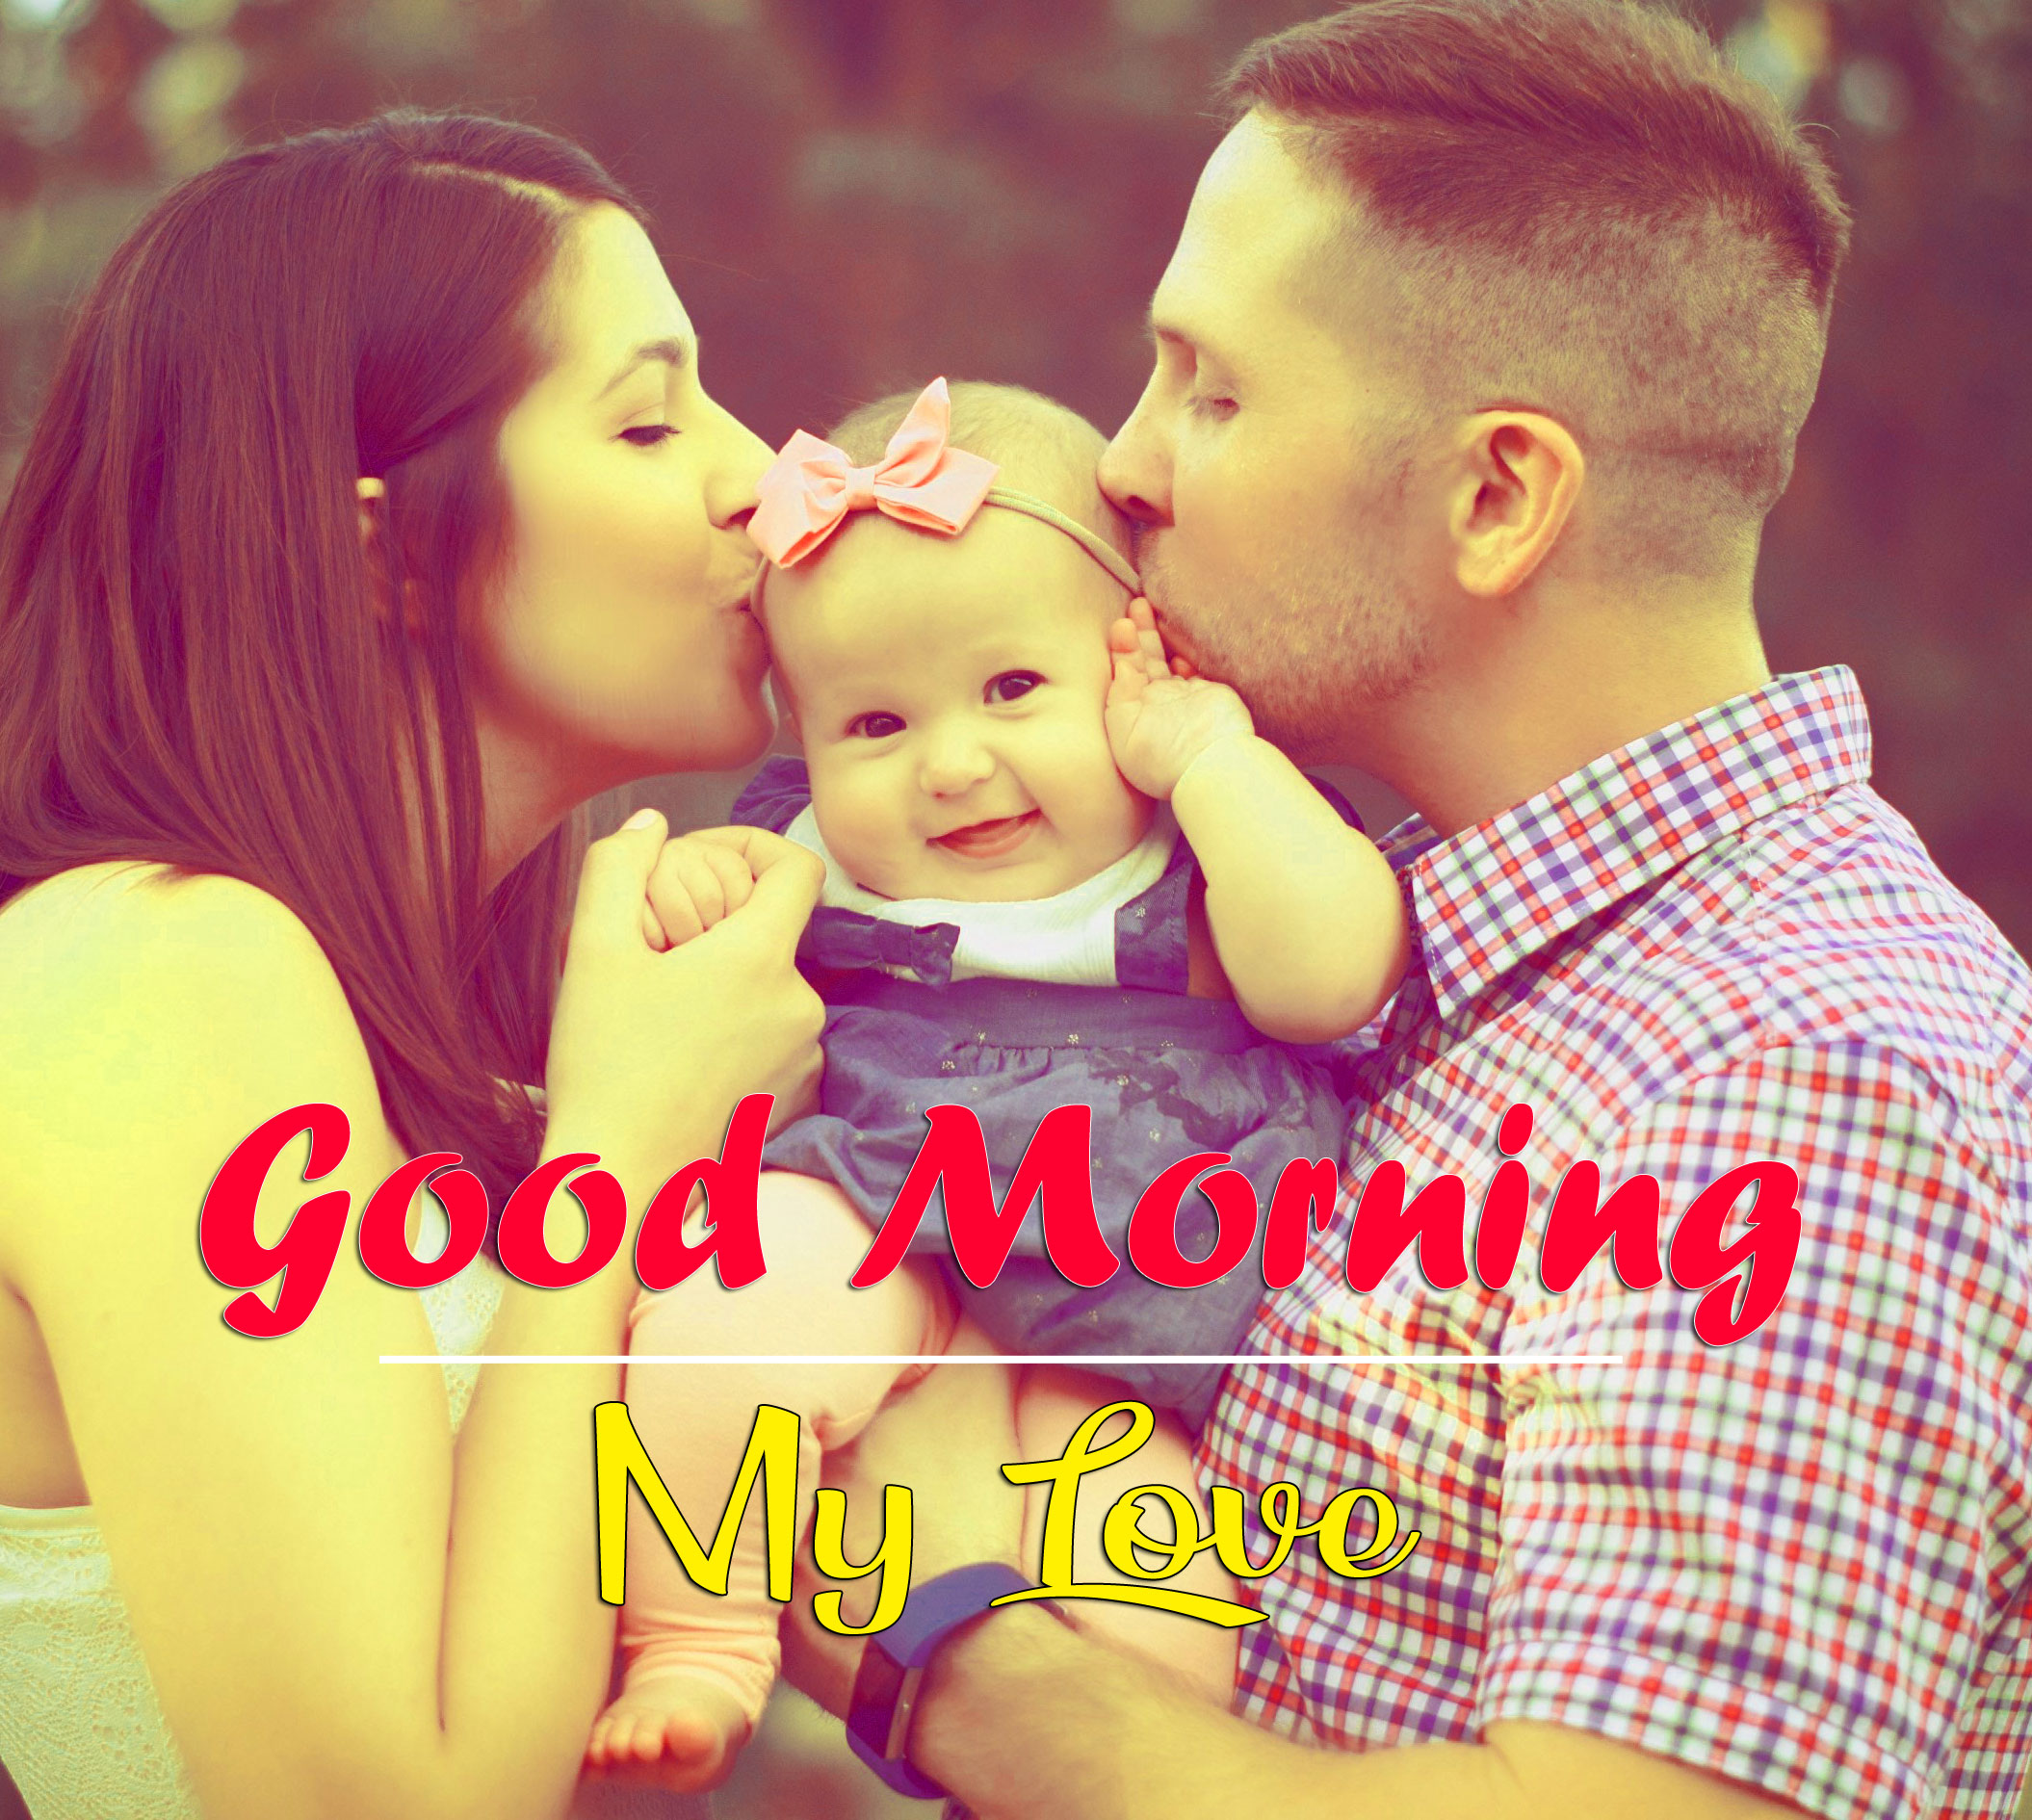 good morning Whatsapp dp Pics With Cute Family